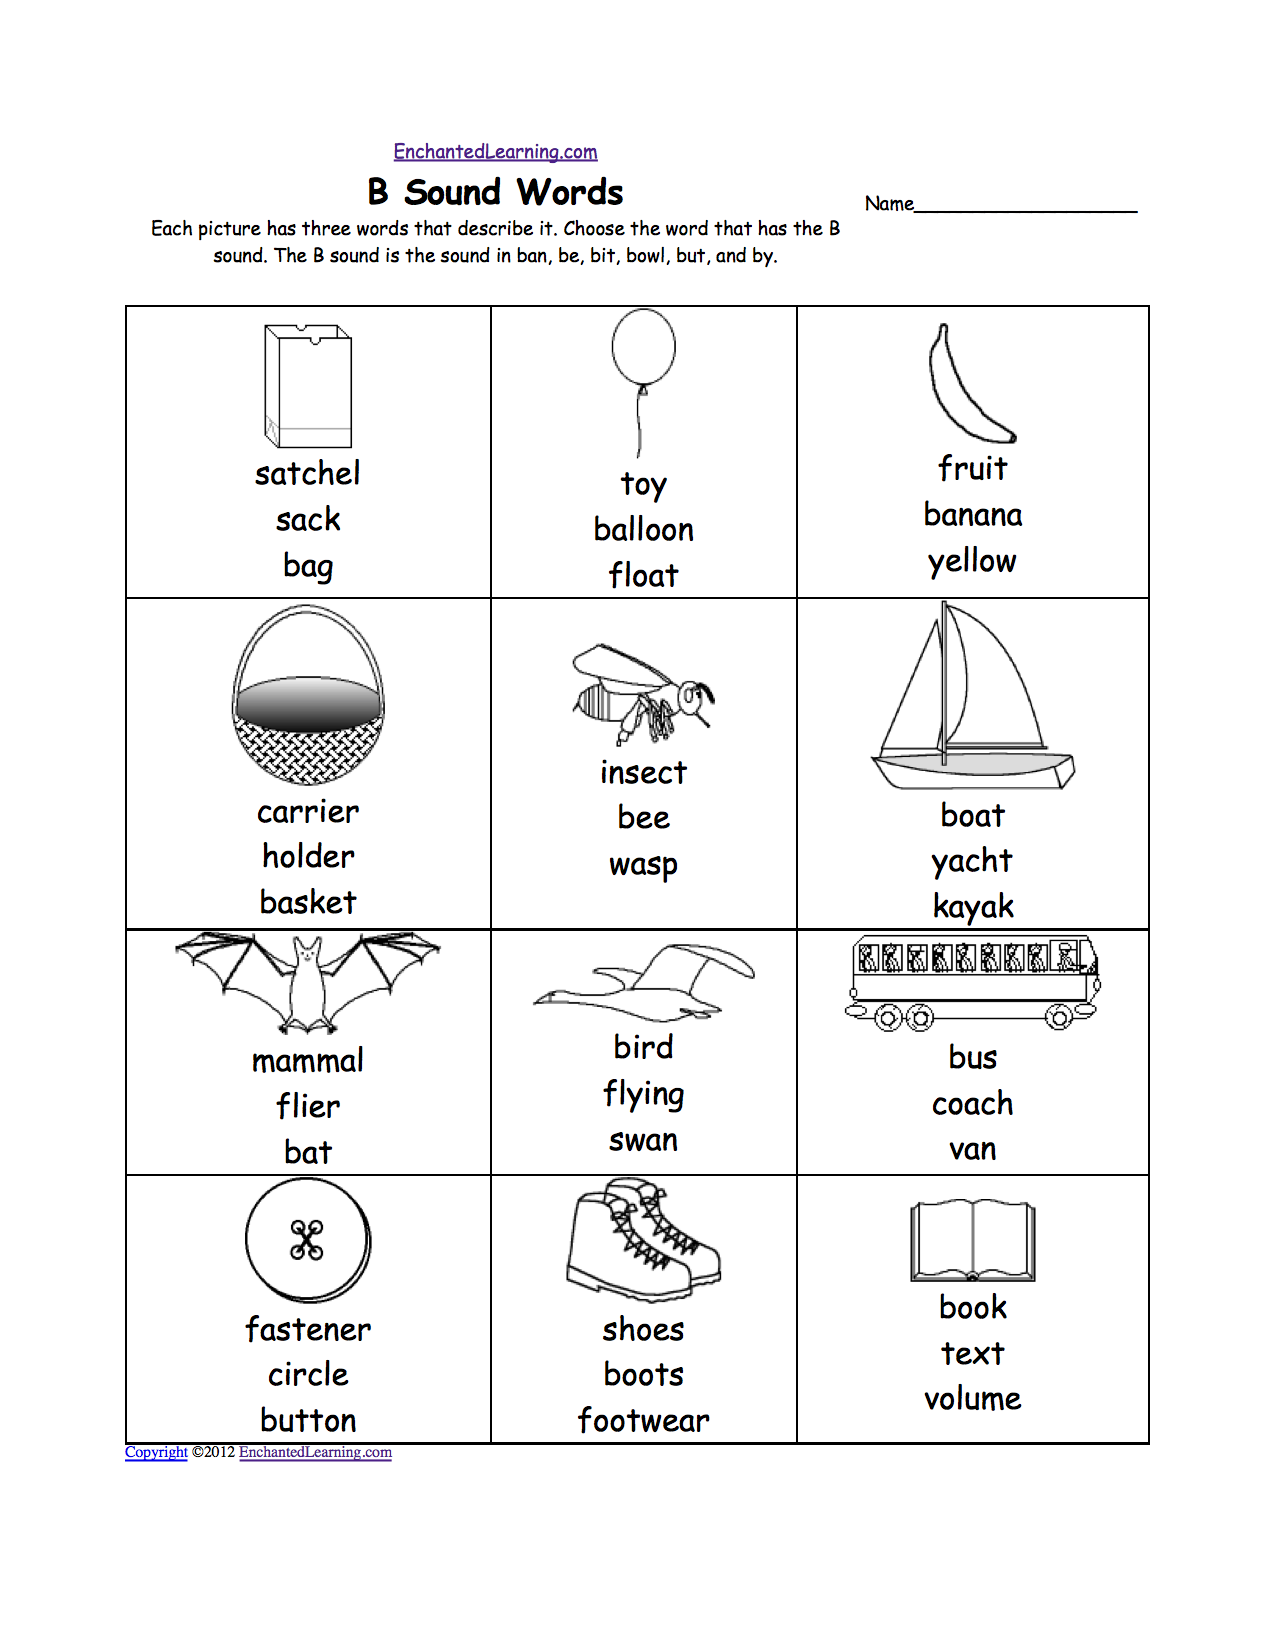 Weirdmailus  Marvellous Phonics Worksheets Multiple Choice Worksheets To Print  With Goodlooking Quotbquot Sound Phonics Worksheet Multiple Choice Each Picture Has Three Words That Describe It Choose The Word That Has A Quotbquot Sound The Quotbquot Sound Is The Sound  With Extraordinary Maximum Mortgage Worksheet Also Sink Or Float Worksheet For Kindergarten In Addition Worksheets On Odd And Even Numbers For Grade  And Mixed Numbers On A Number Line Worksheet As Well As Multiplication Mental Math Worksheets Additionally Montessori Math Worksheets From Enchantedlearningcom With Weirdmailus  Goodlooking Phonics Worksheets Multiple Choice Worksheets To Print  With Extraordinary Quotbquot Sound Phonics Worksheet Multiple Choice Each Picture Has Three Words That Describe It Choose The Word That Has A Quotbquot Sound The Quotbquot Sound Is The Sound  And Marvellous Maximum Mortgage Worksheet Also Sink Or Float Worksheet For Kindergarten In Addition Worksheets On Odd And Even Numbers For Grade  From Enchantedlearningcom